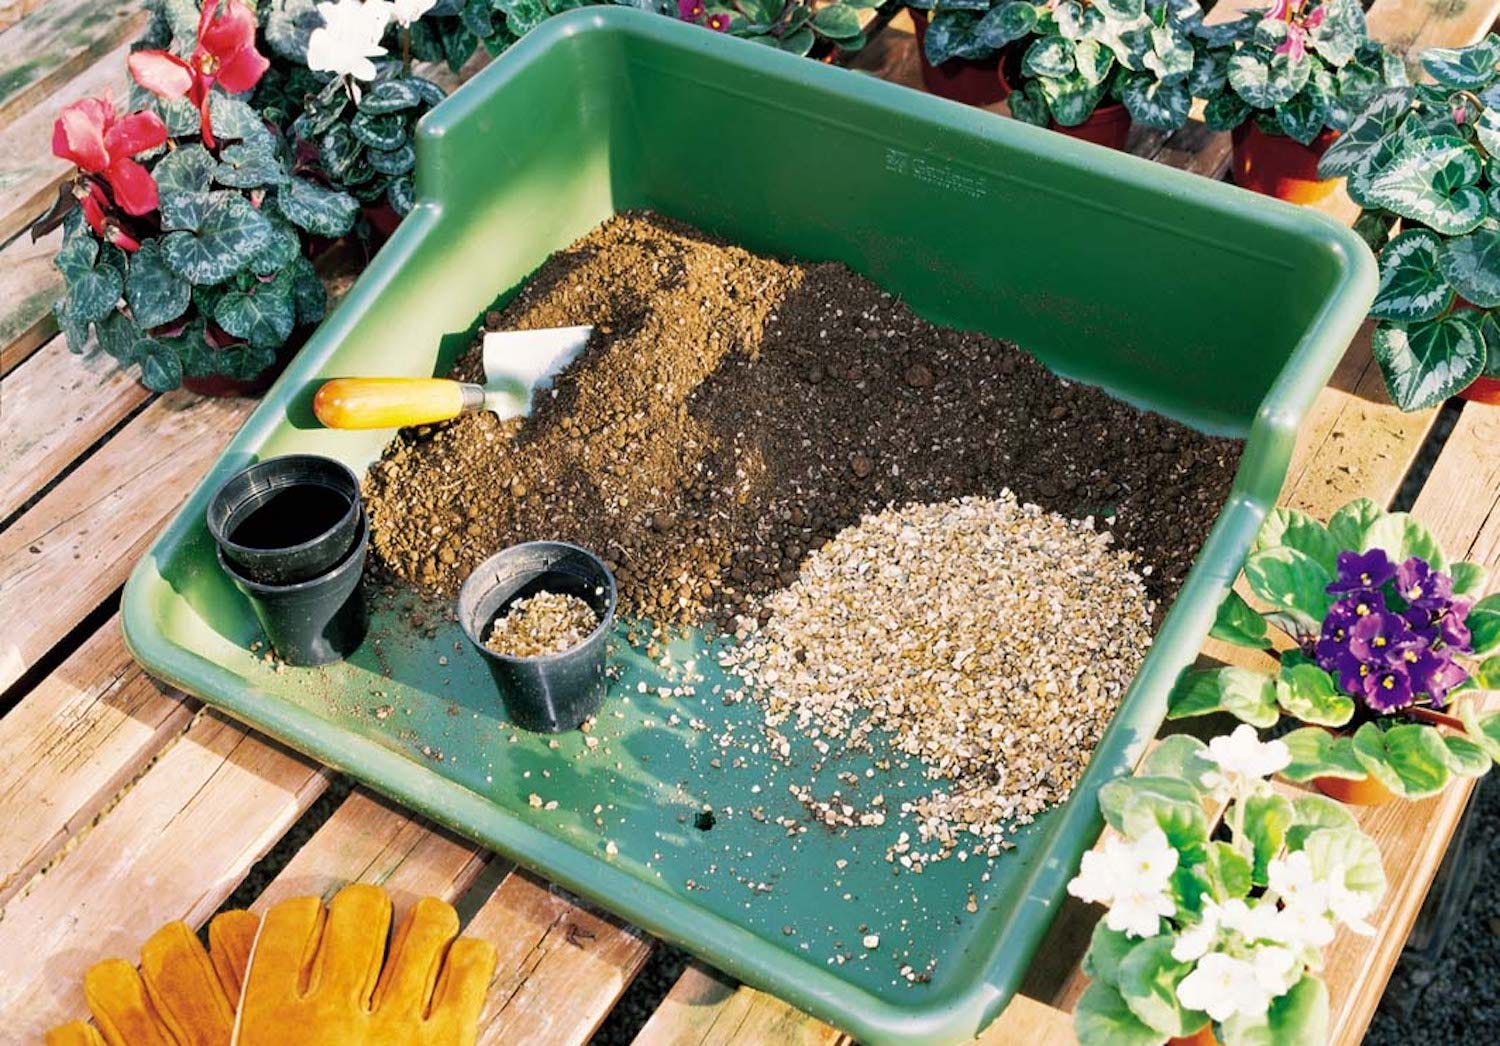 A green potting tray filled with dirt and other potting materials